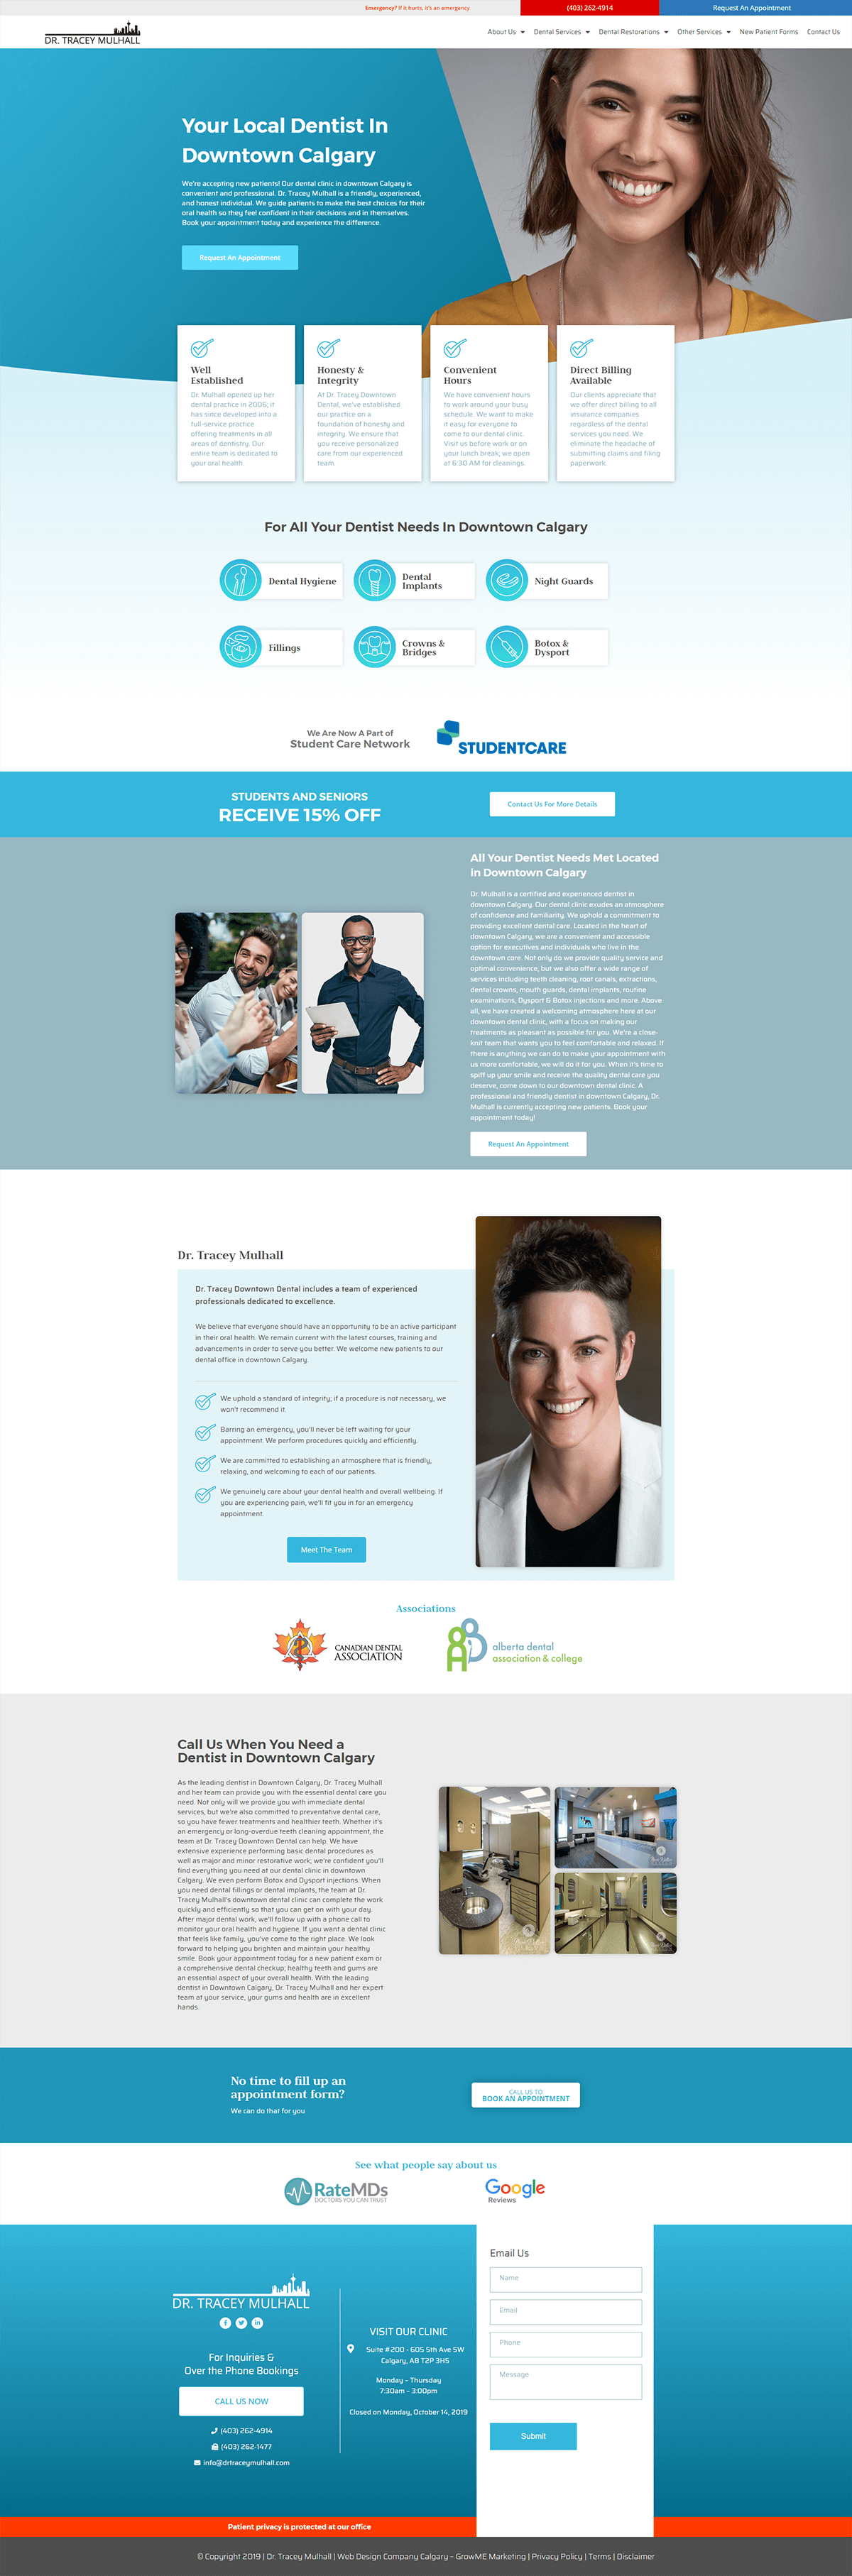 Dr Tracey Mulhall Home Page